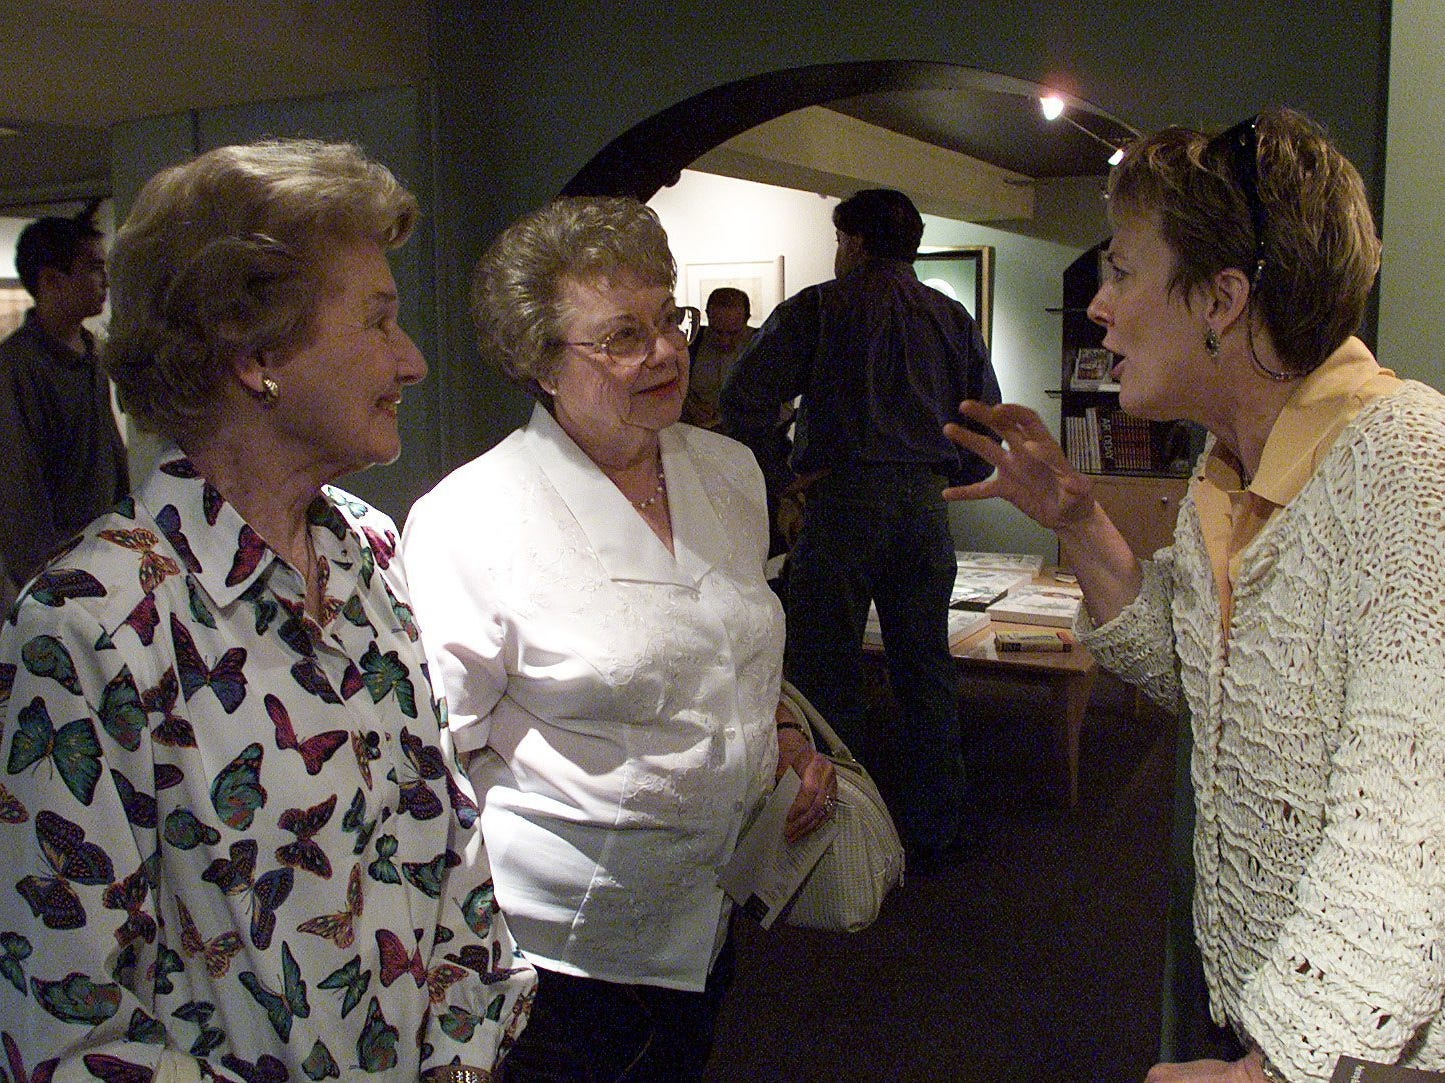 5/18/2000 Jenna Welch, Mary Bowhay and Adair Margo discuss some of the art work that is on display at Margos art gallery.